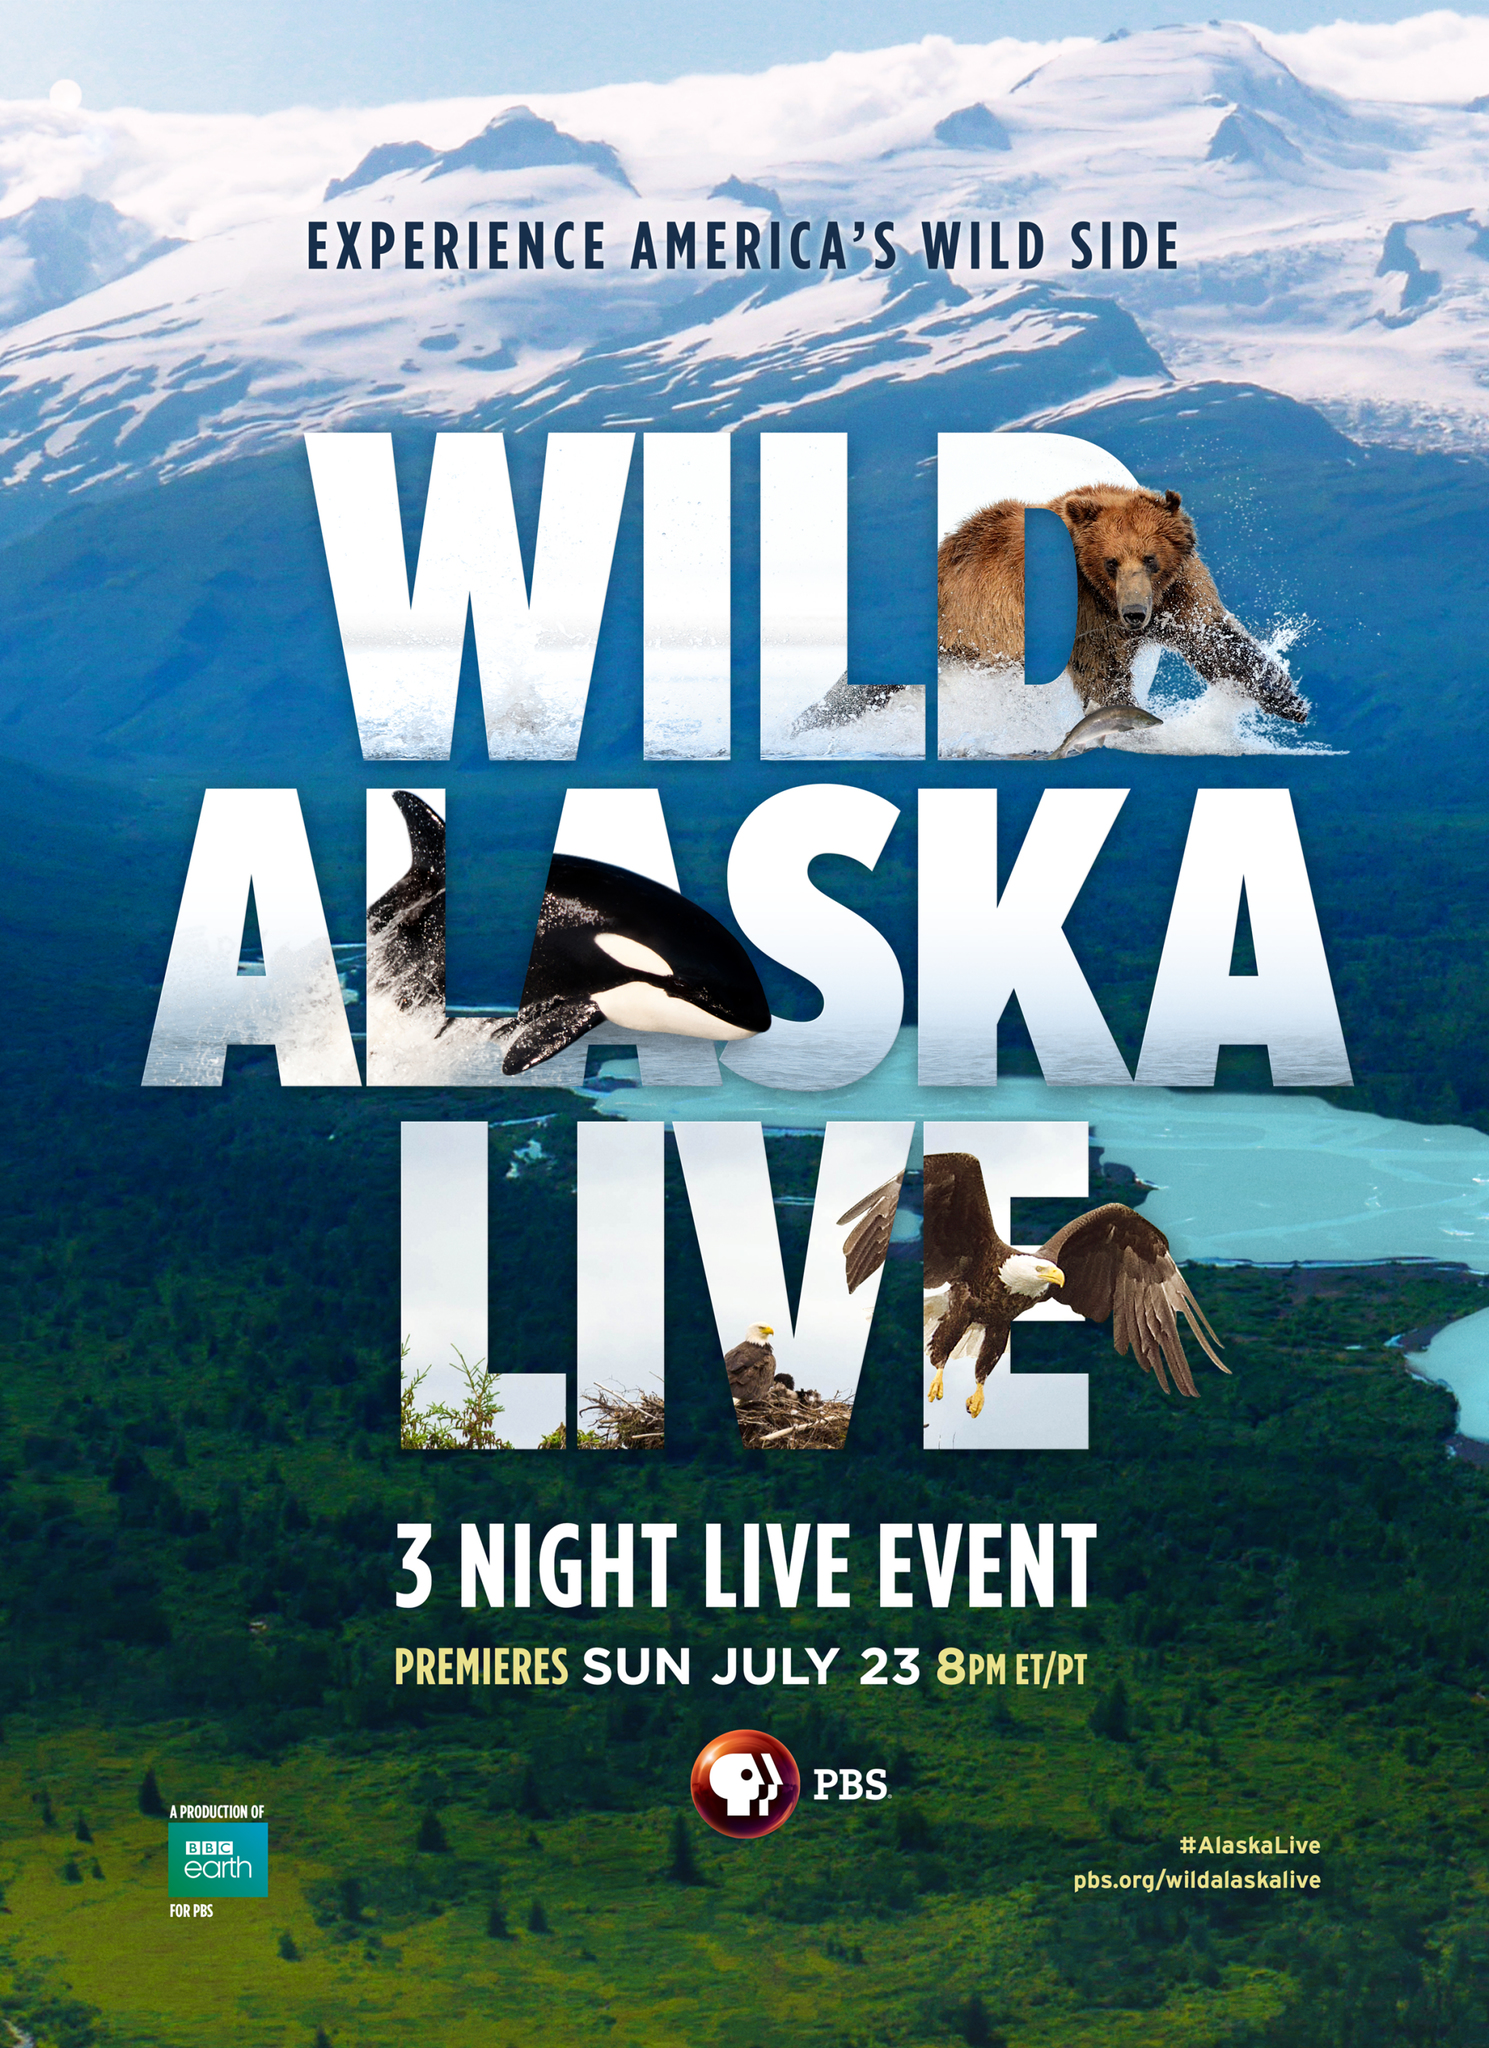 PROMOTION PHOTO: Wild Alaska Live, BBC Earth for PBS